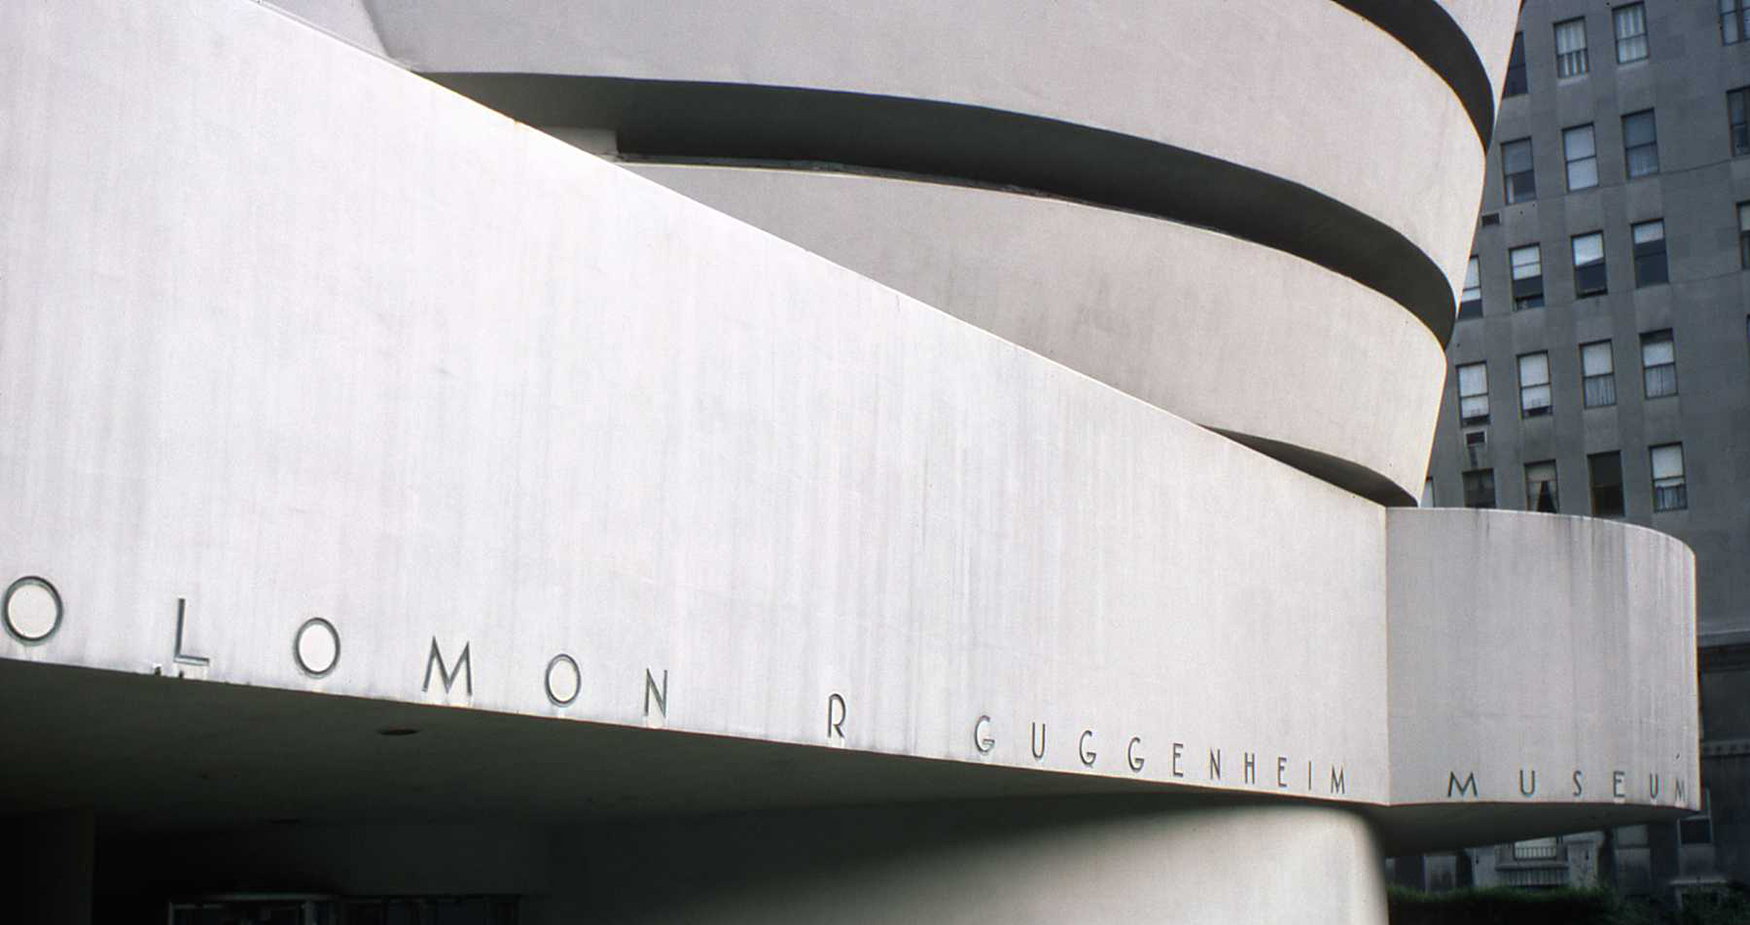 The external form of the Guggenheim is dictated by the interior design